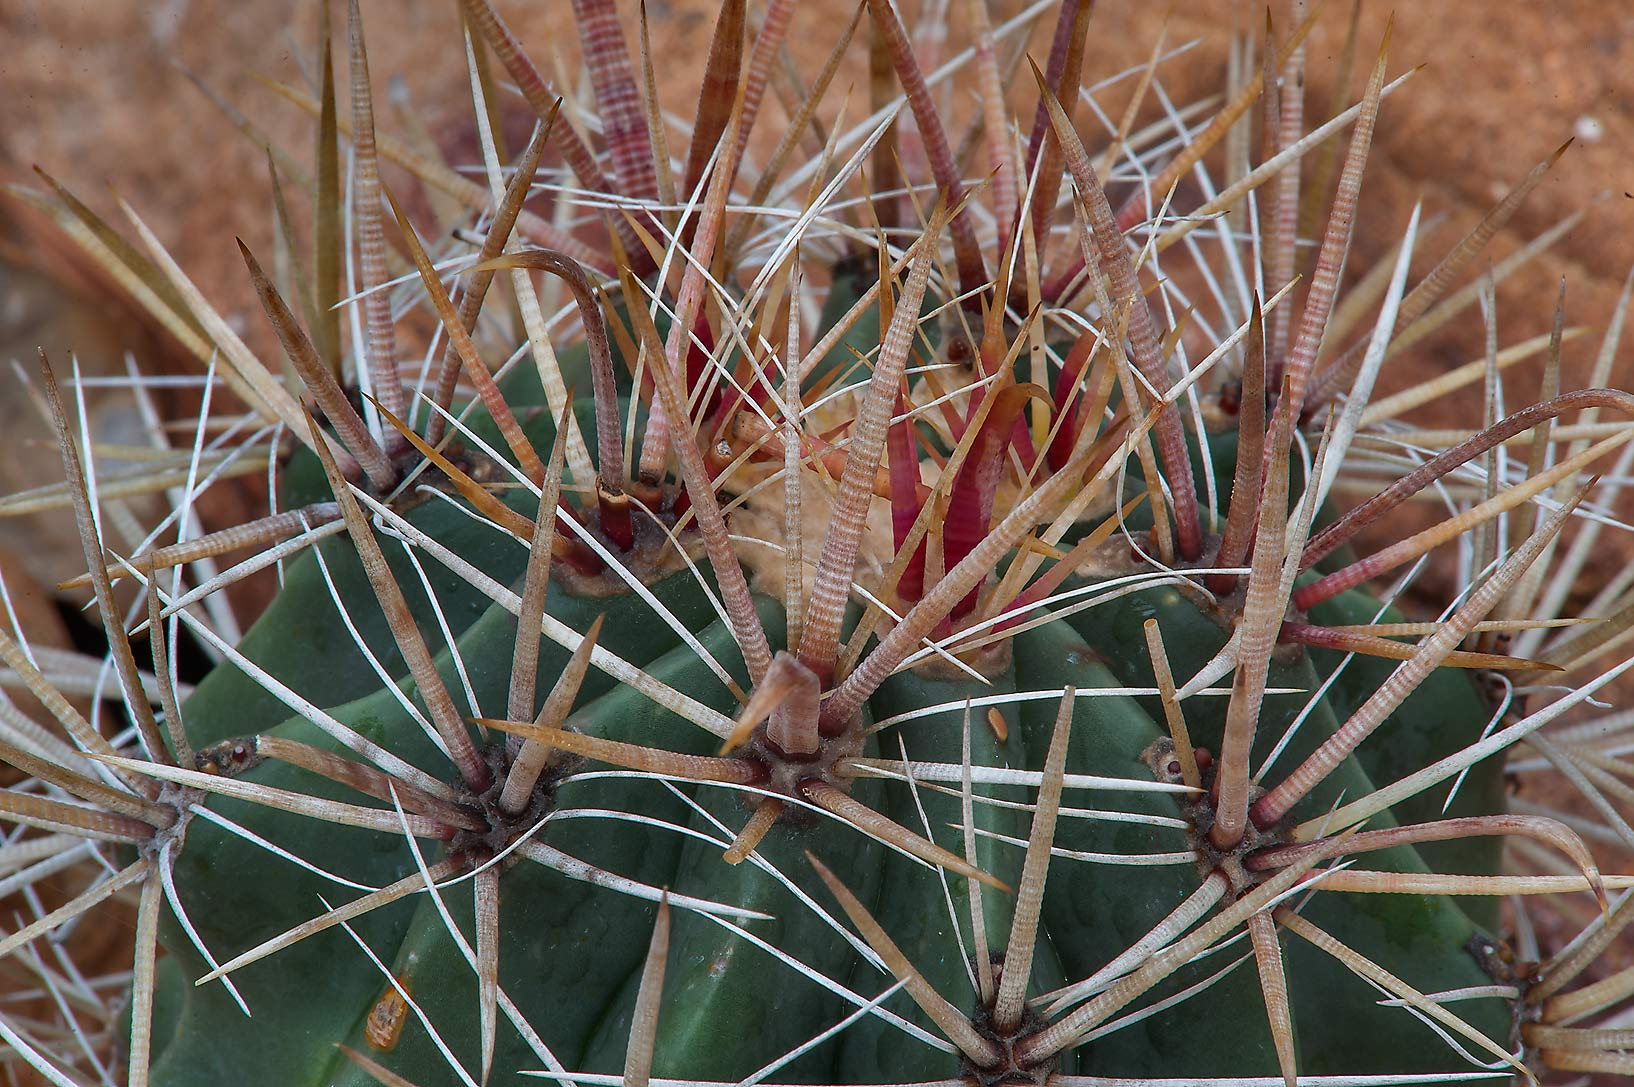 Barrel cactus (Ferrocactus species) in Mercer...Gardens. Humble (Houston area), Texas